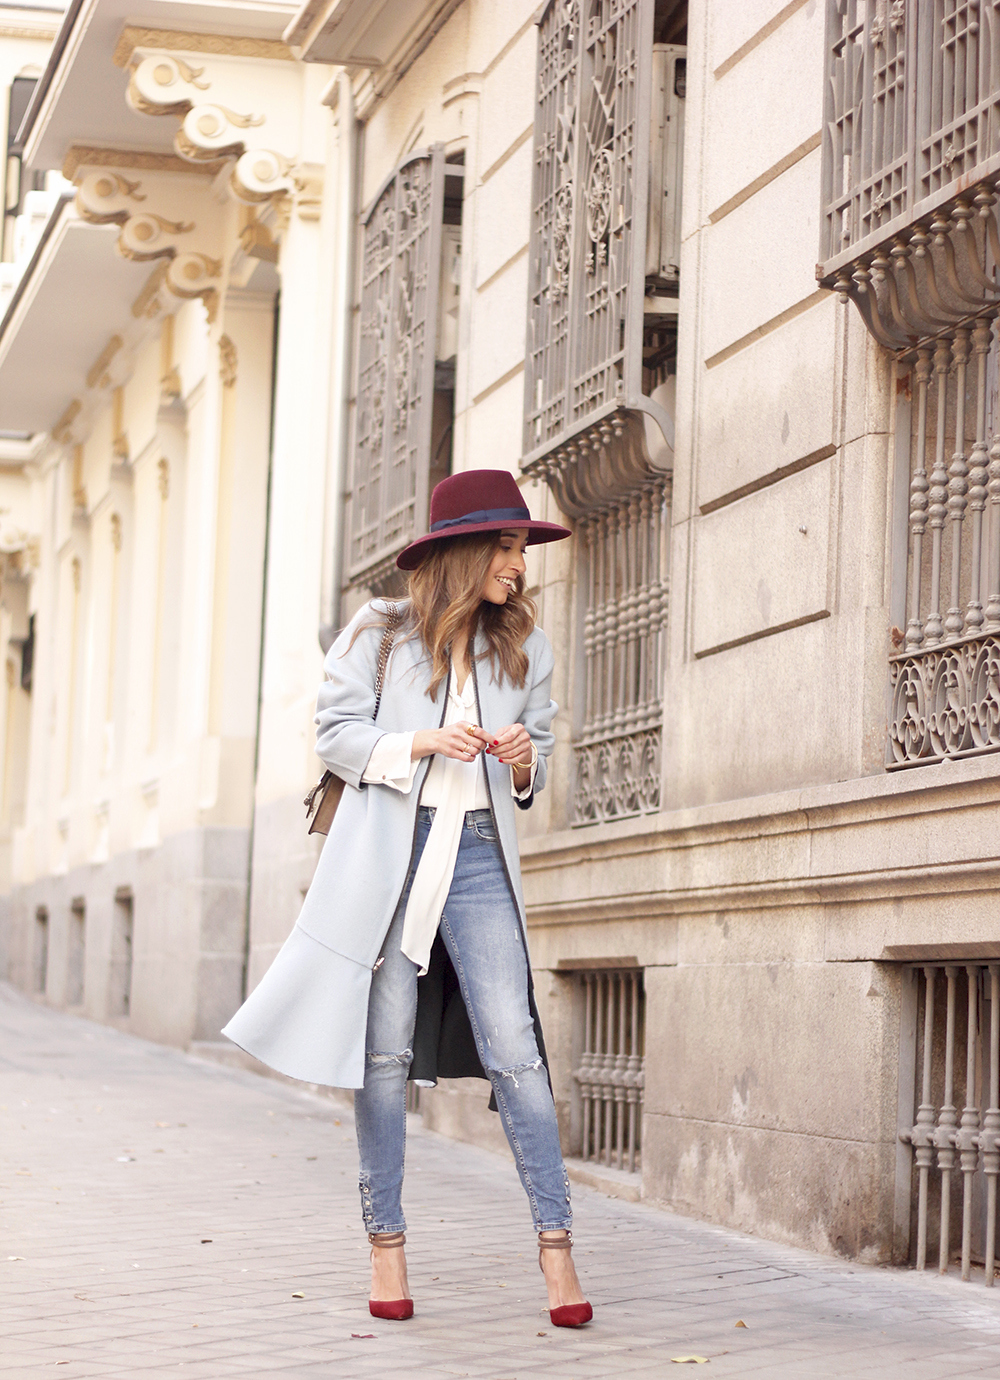 blue coat uterqüe abrigo azul gucci bag burgundy heels winter outfit street style fashion01